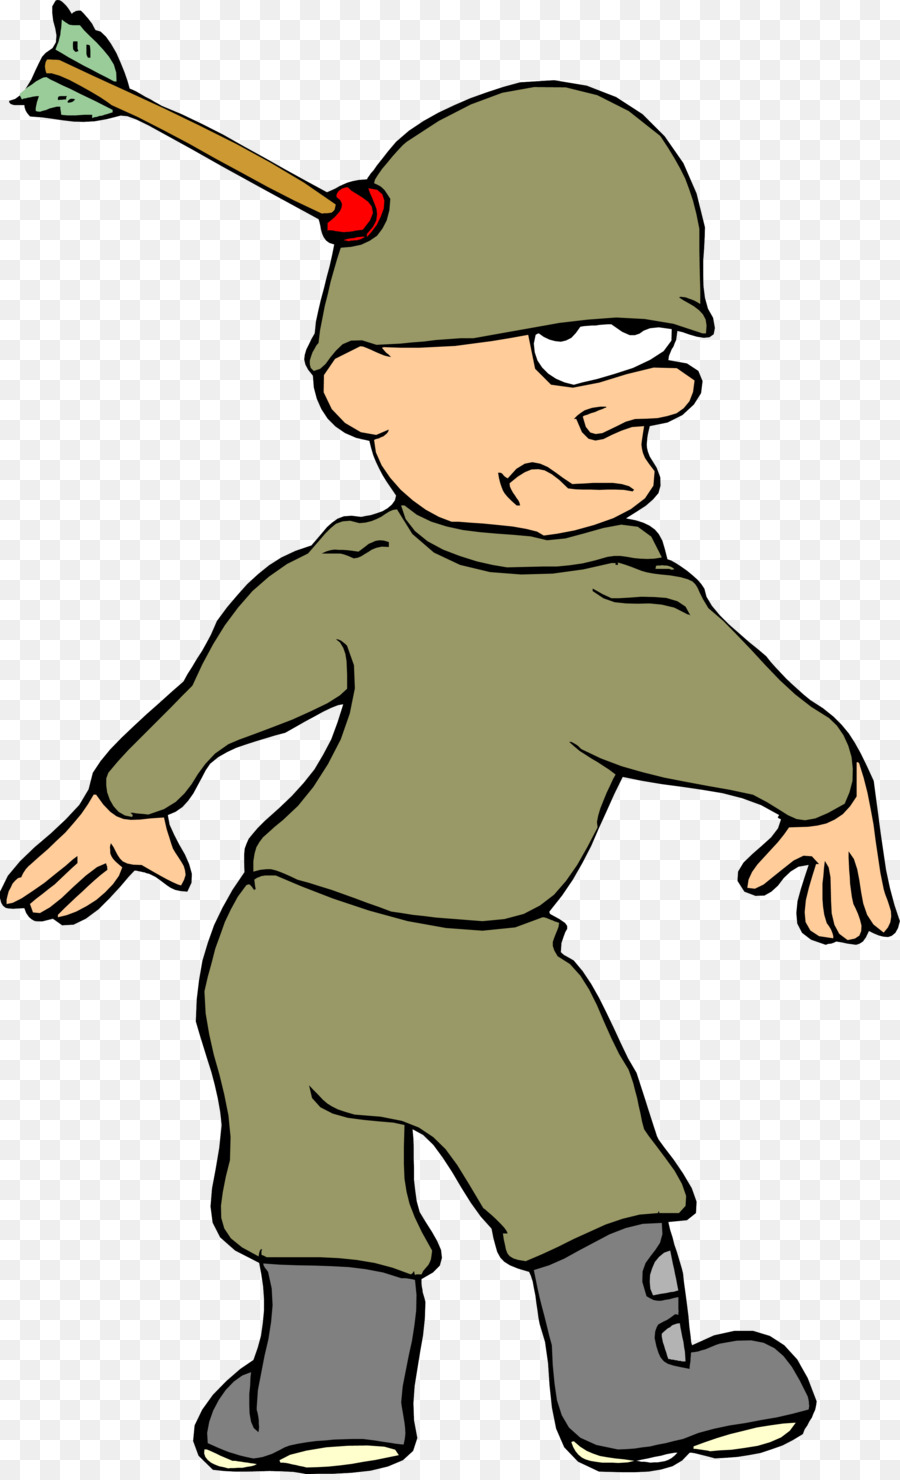 Army clipart clip art. Cartoon soldier png download